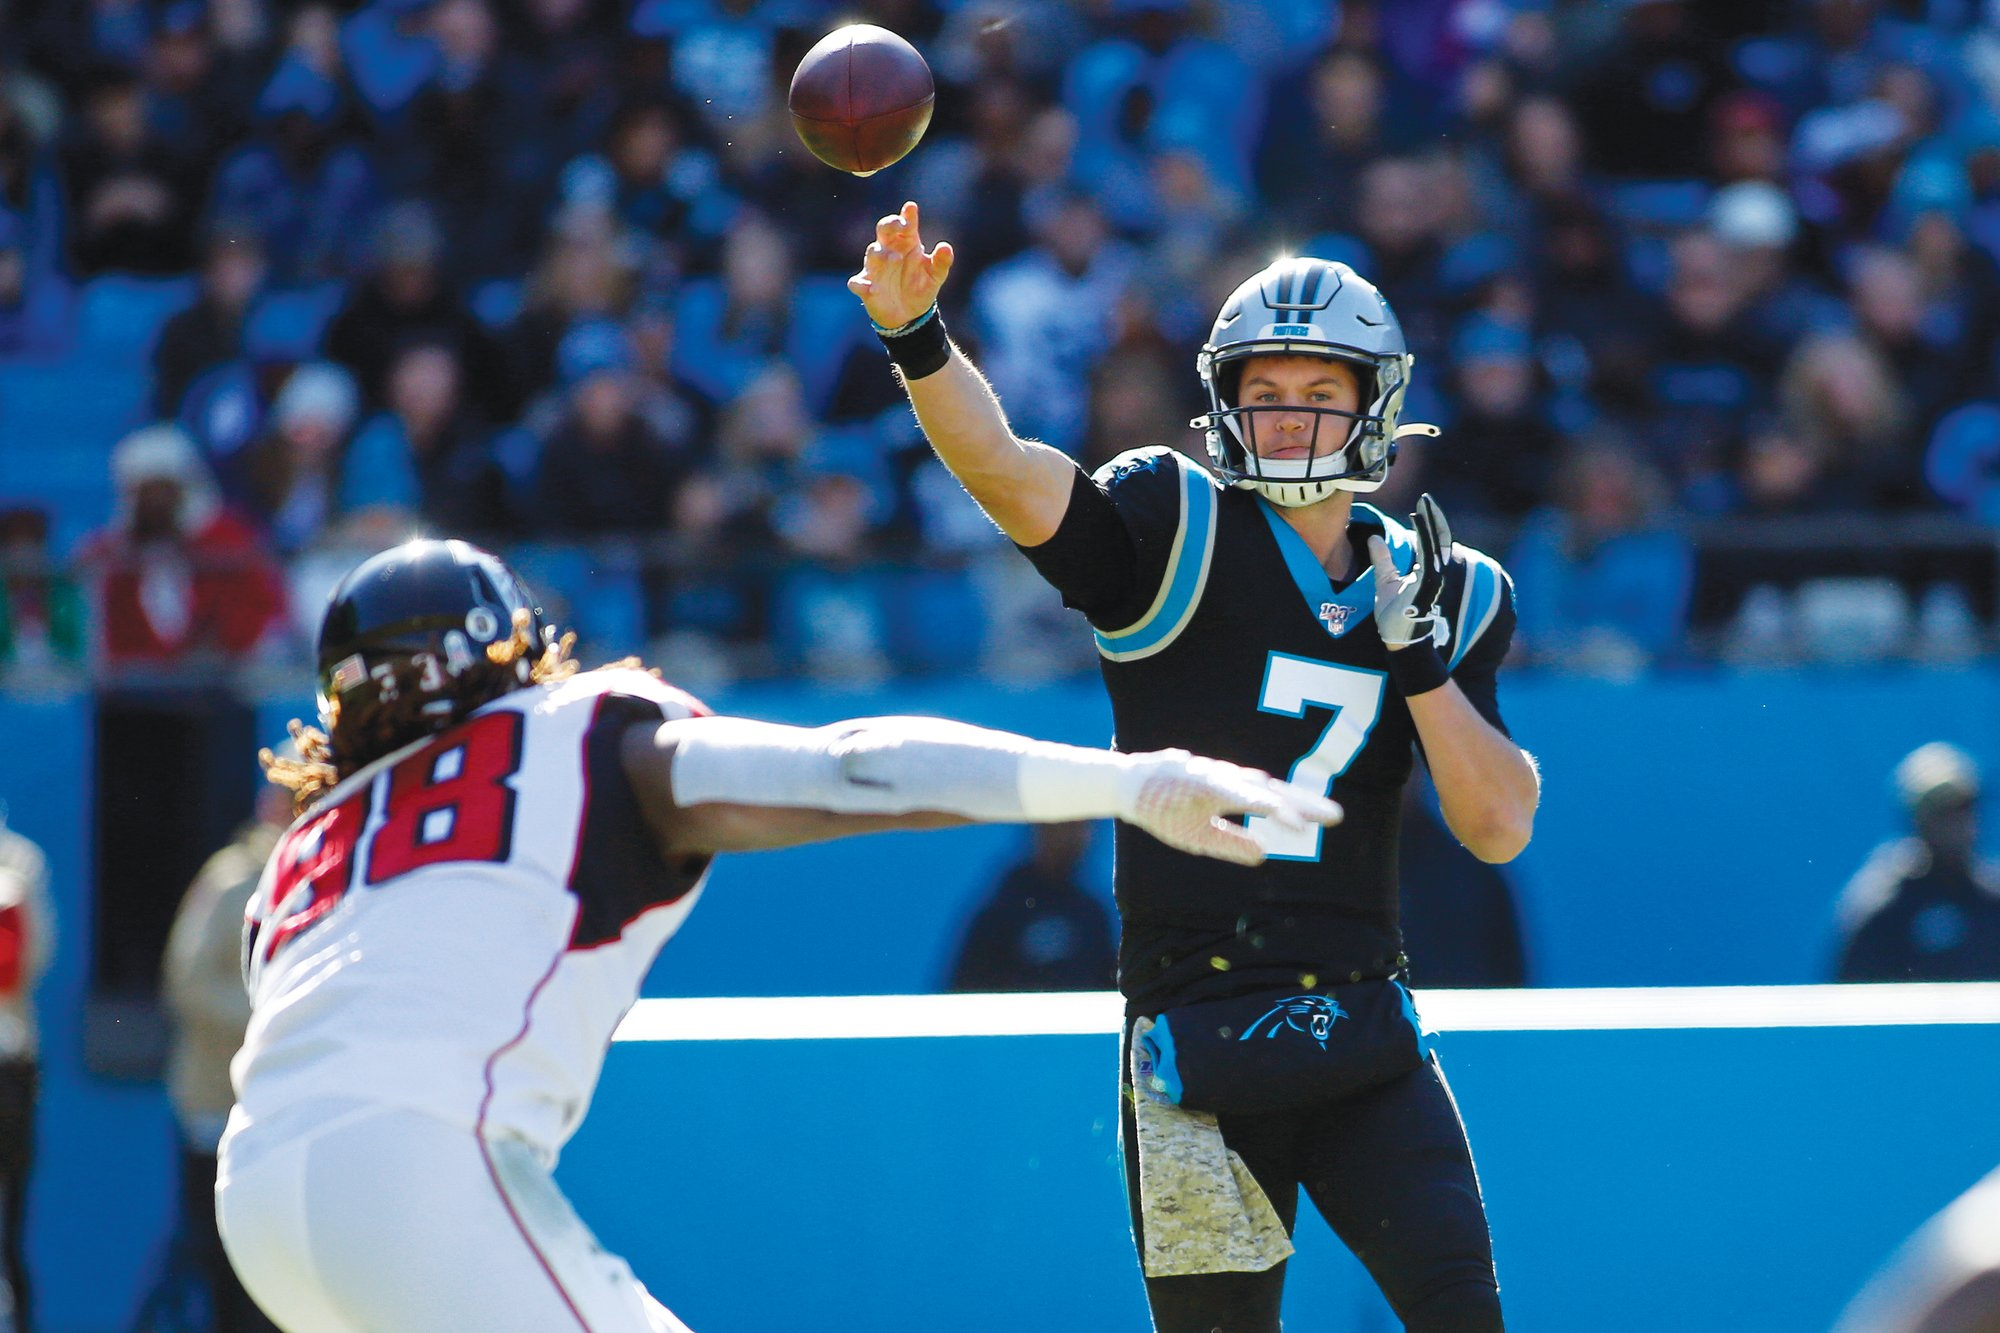 Carolina Panthers quarterback Kyle Allen (7) passes while Atlanta Falcons defensive end Takkarist McKinley (98) defends during the first half of an NFL football game in Charlotte, N.C., Sunday, Nov. 17, 2019.